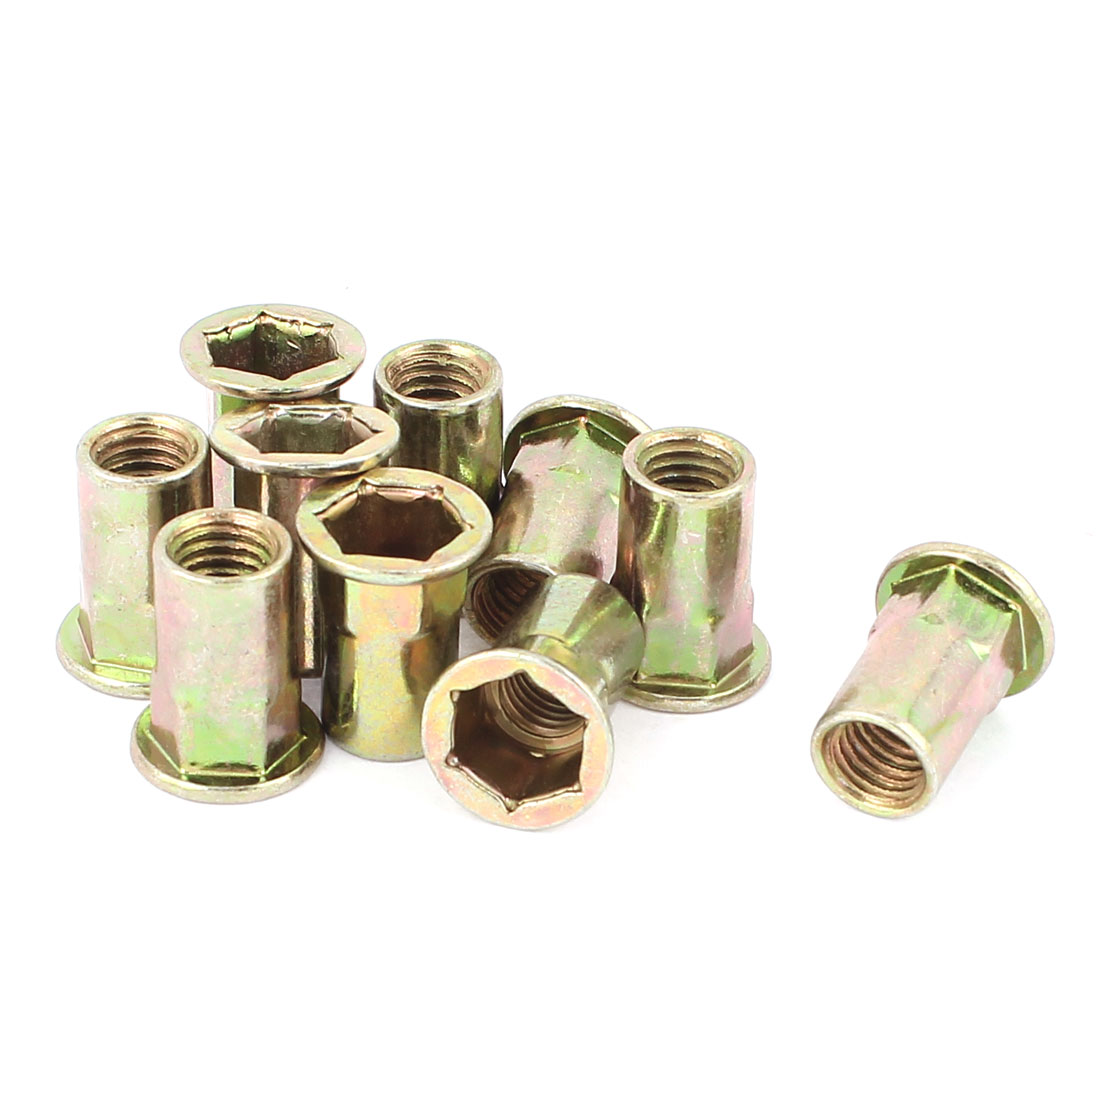 9mmx22.5mm Flat Head Metal Hex Socket Rivet Nut Insert Nutsert 10Pcs